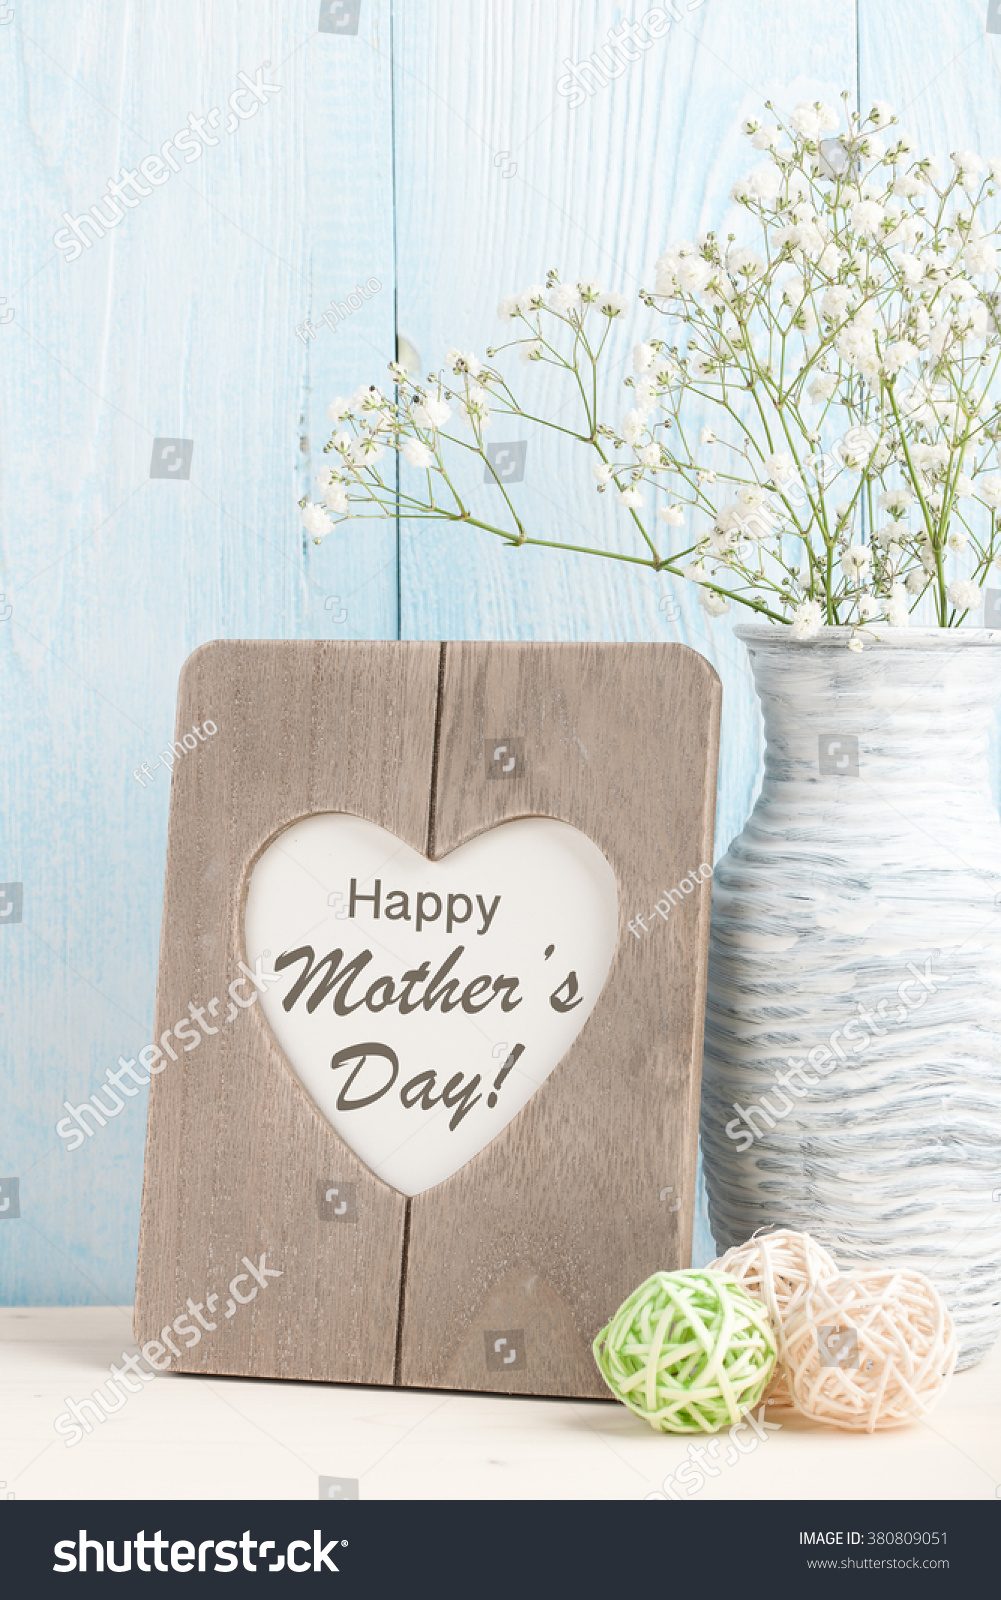 Greeting Message Mothers Day Stock Photo Royalty Free 380809051